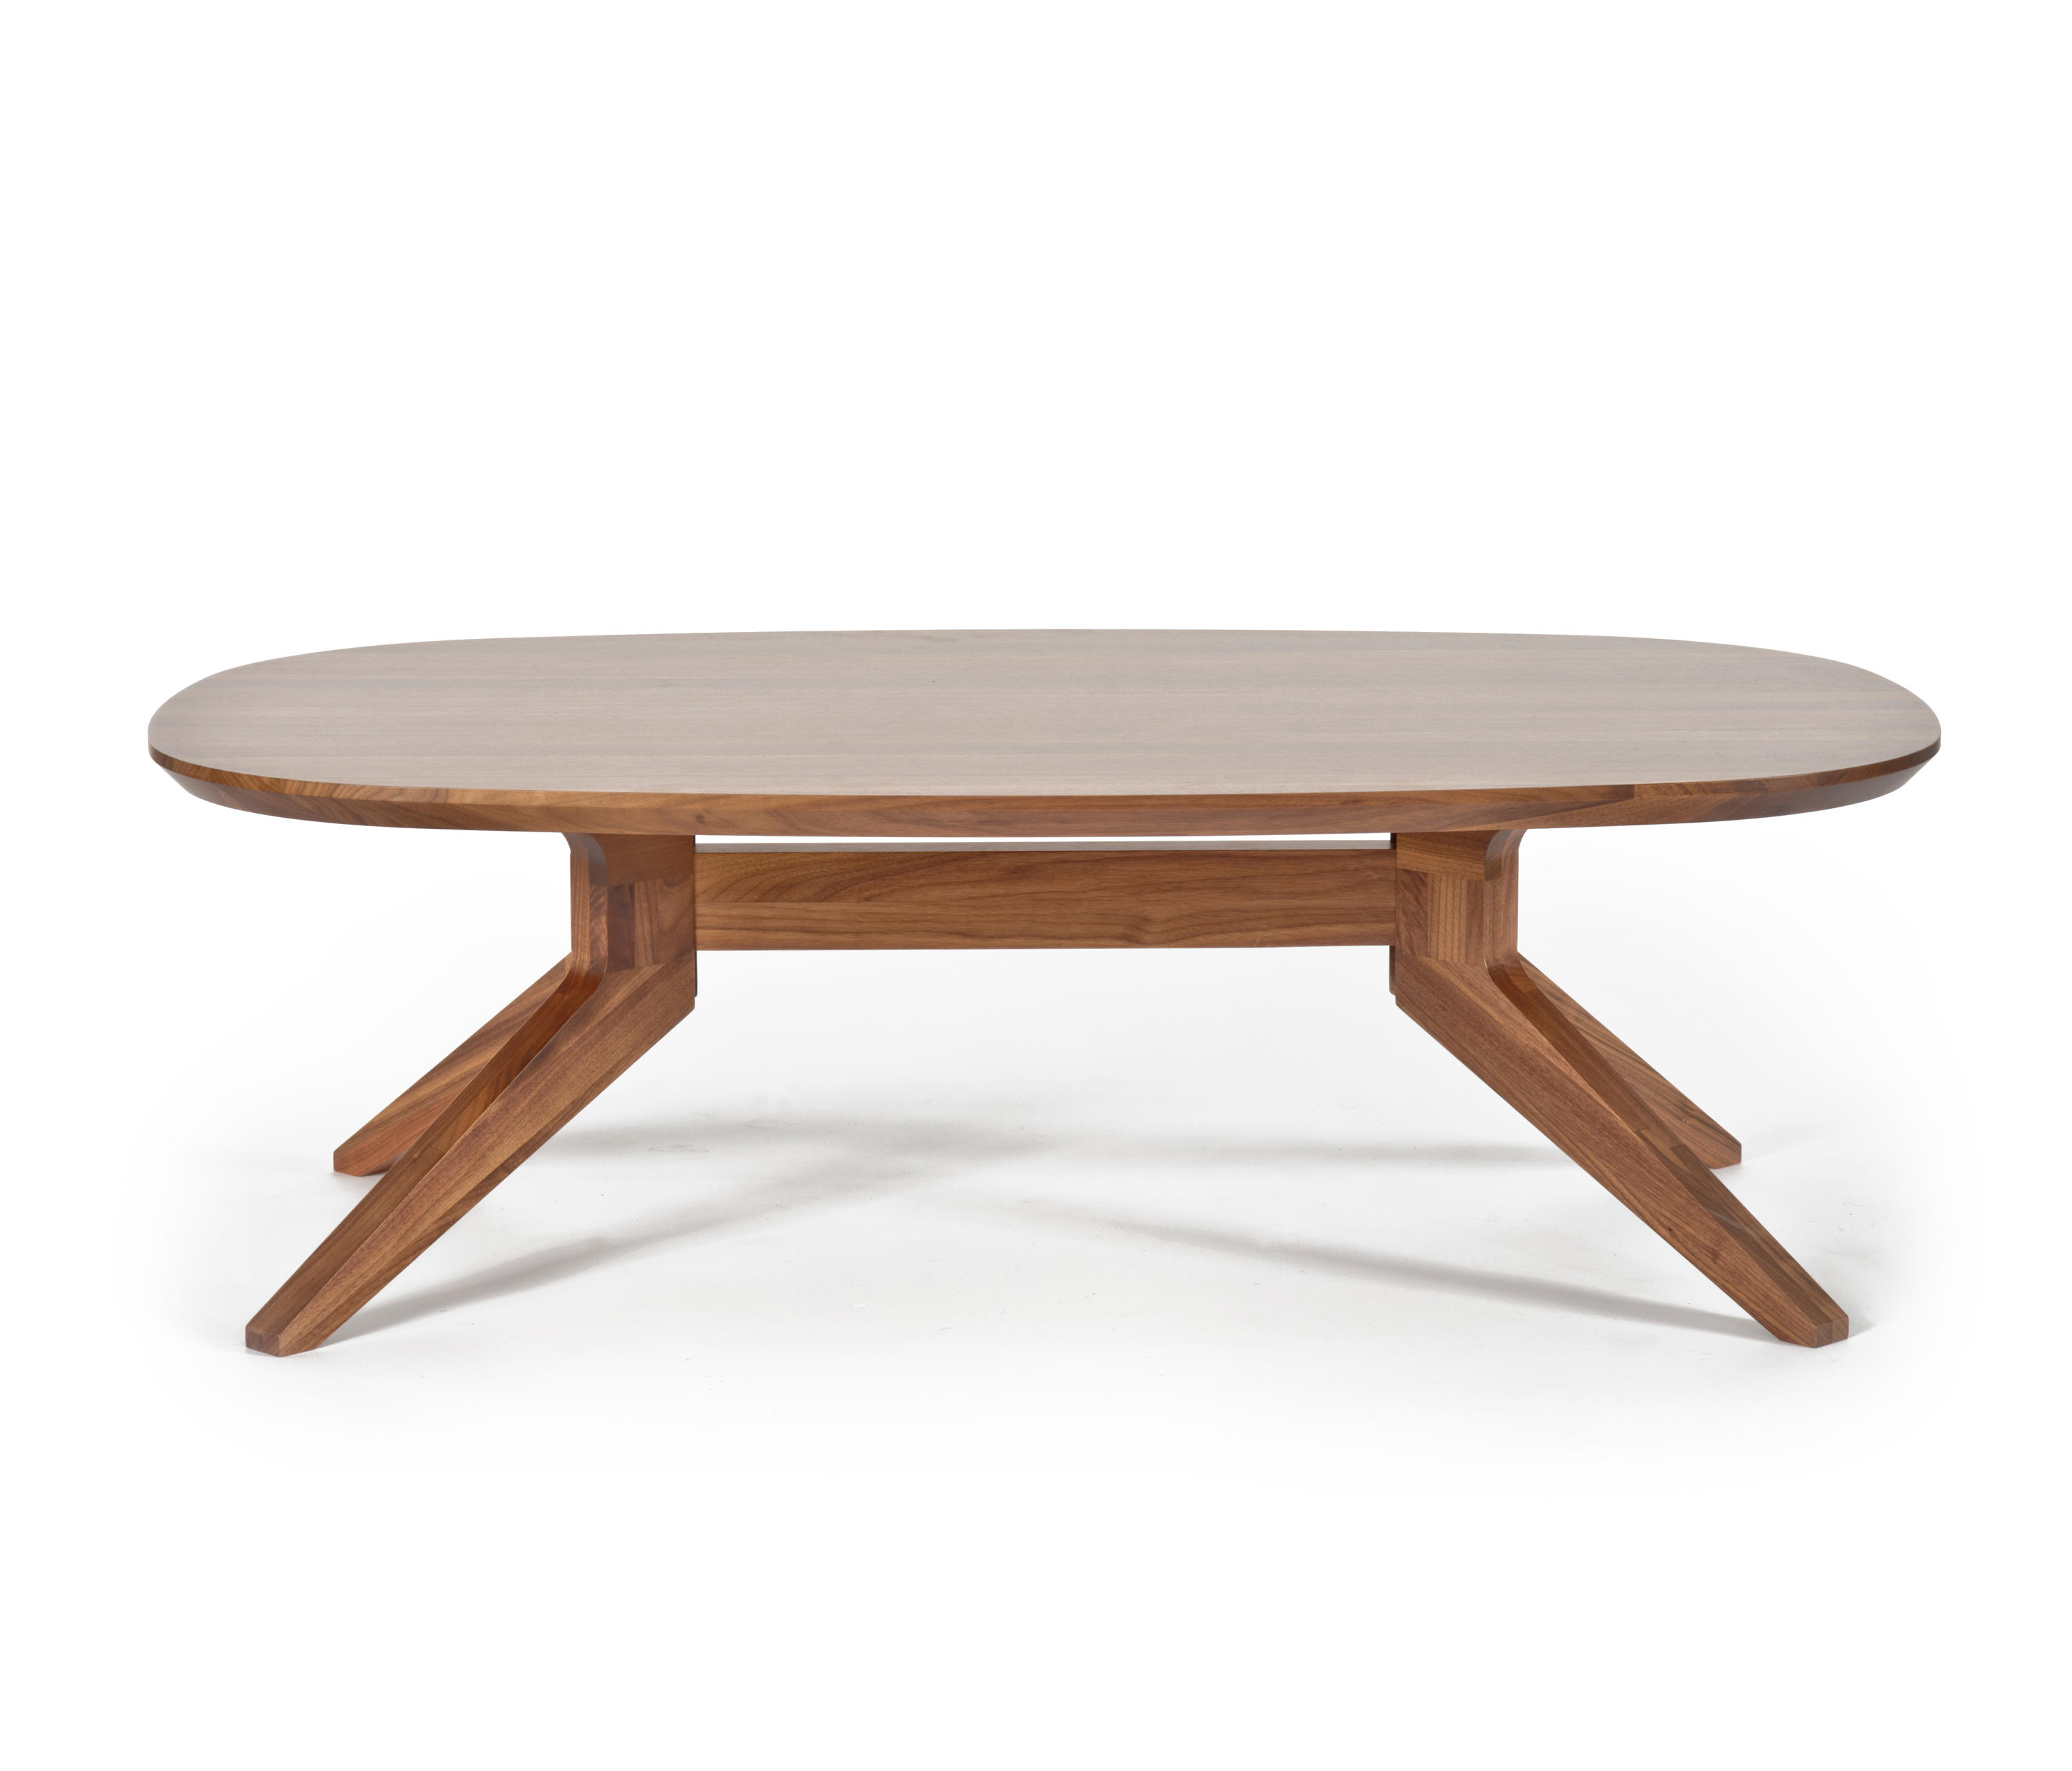 CROSS OVAL COFFEE TABLE Lounge tables from Case Furniture